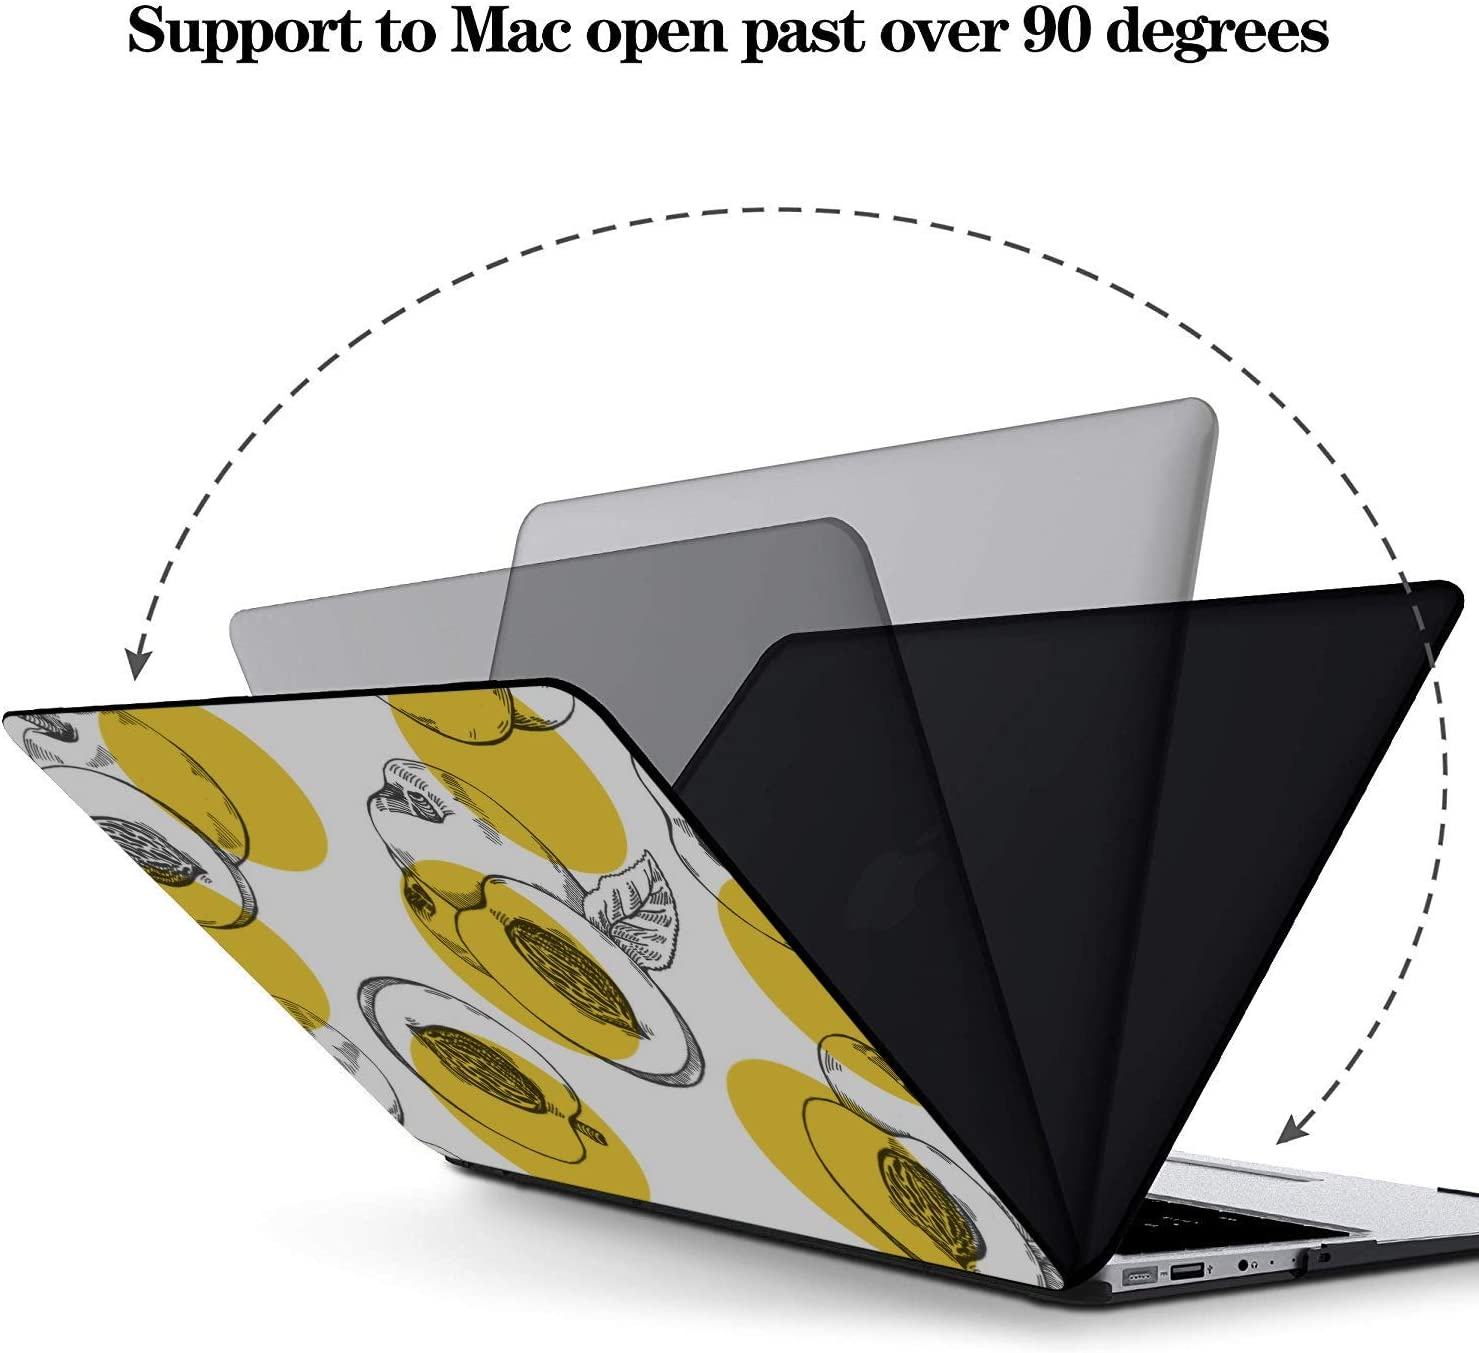 Mac Book Pro Covers Summer Sweet Fruit Yellow Peach Canned Plastic Hard Shell Compatible Mac Air 11 Pro 13 15 MacBook Cover 13 Inch Protection for MacBook 2016-2019 Version